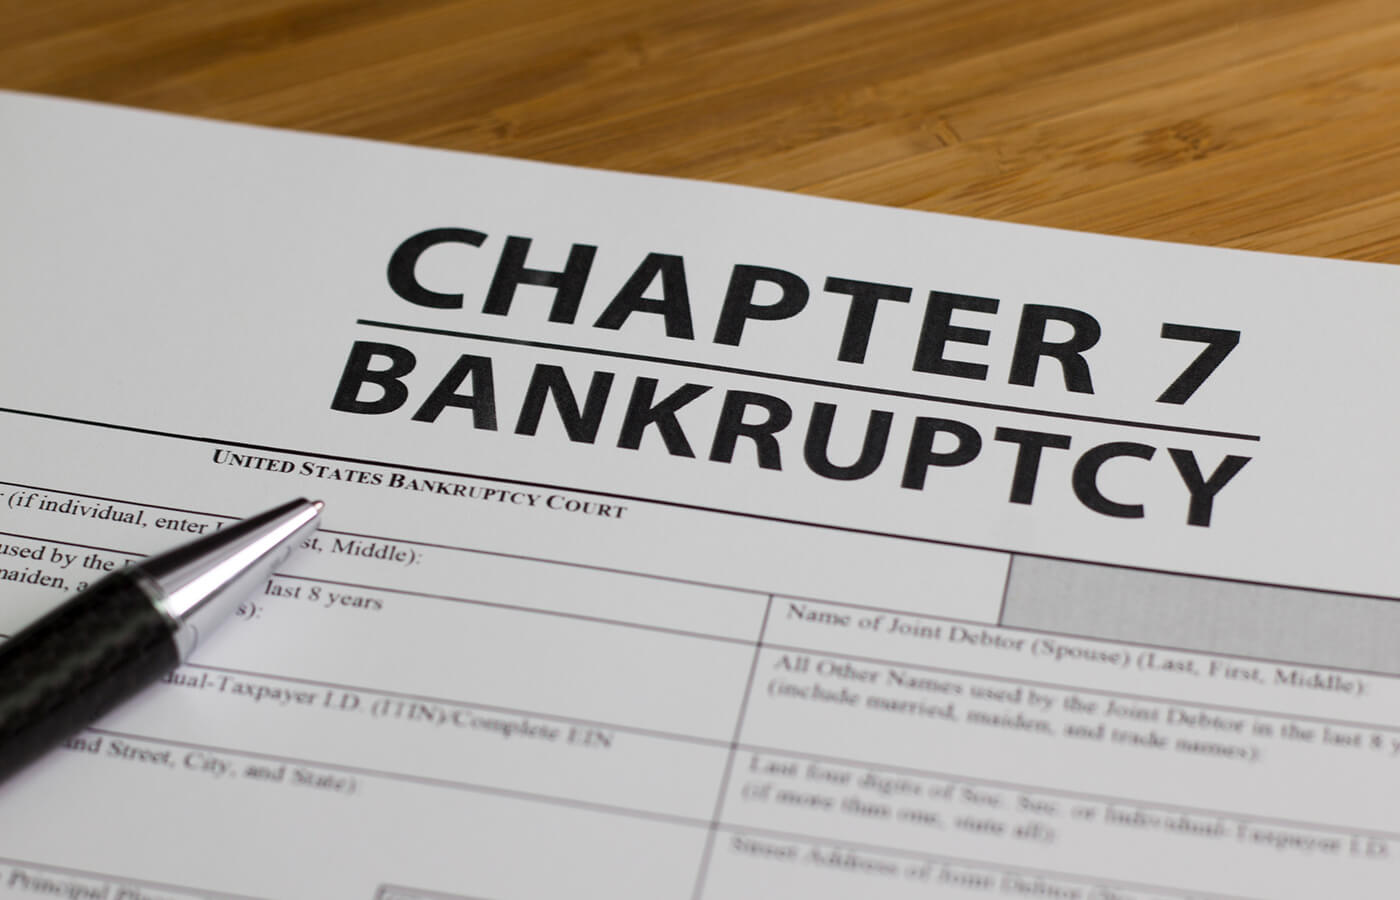 Chapter 7 Bankruptcy accomplish